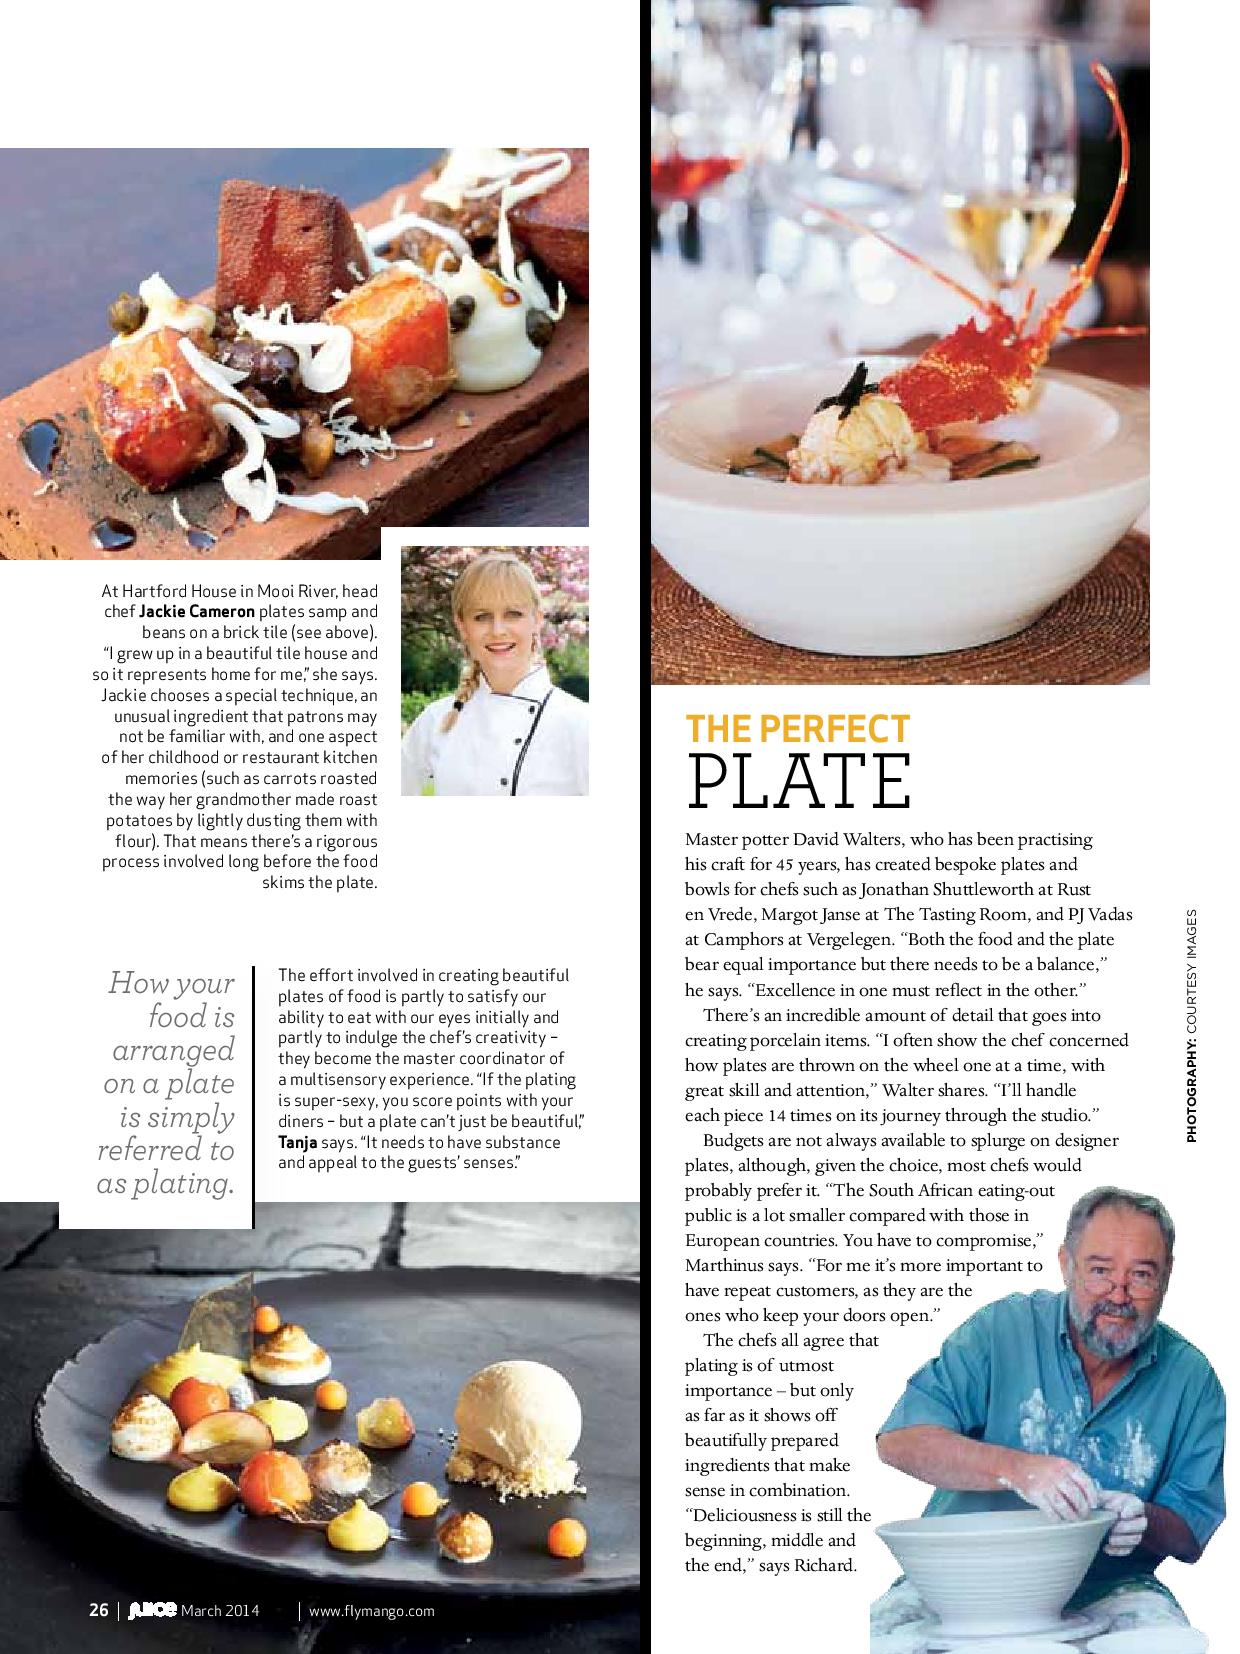 The Art of Plating | Food and the Fabulous